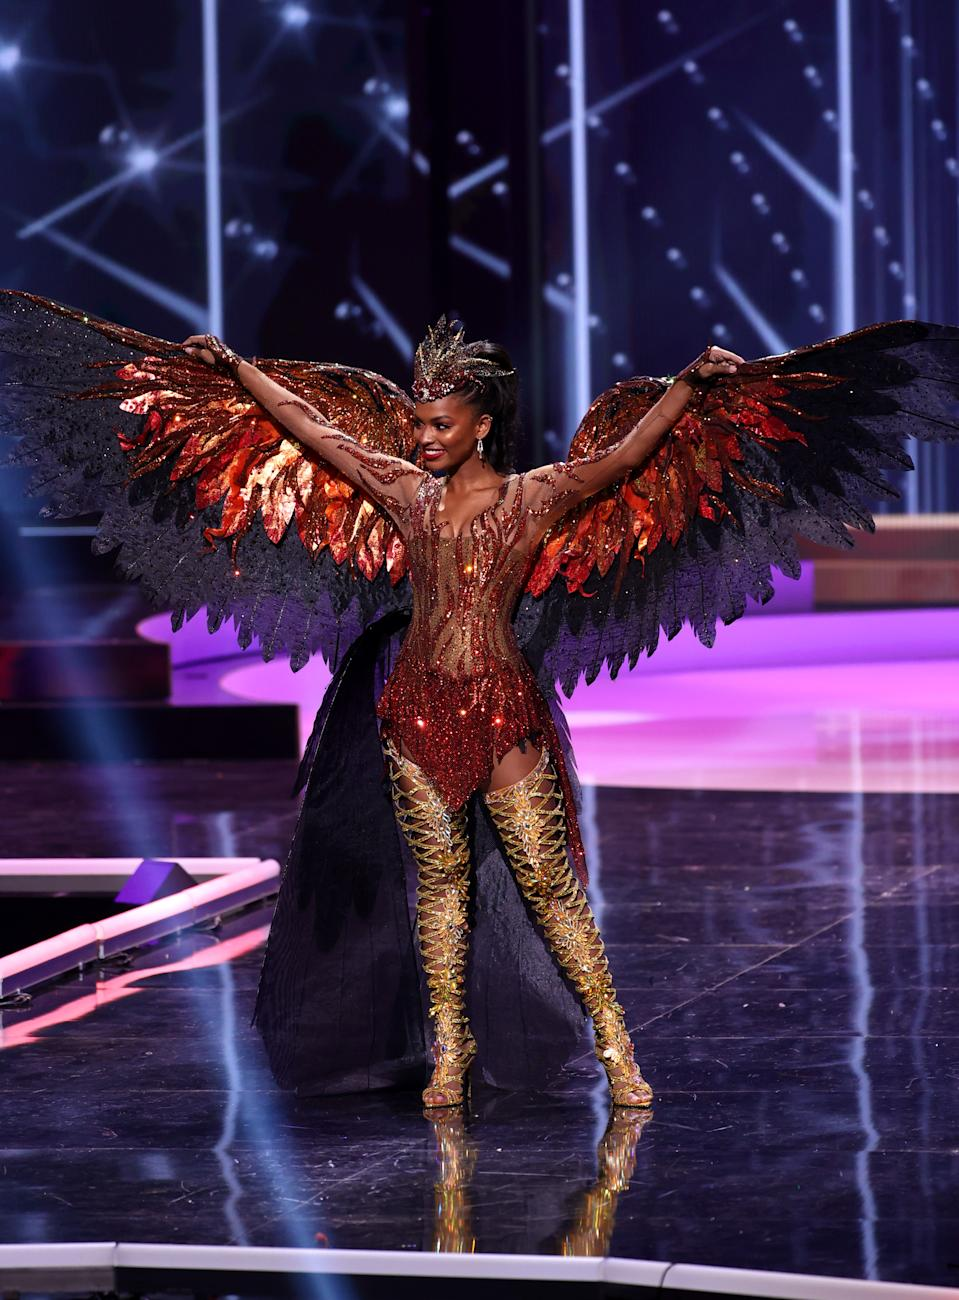 <p>Miss Universe USA Asya Branch appears onstage at the Miss Universe 2021 - National Costume Show at Seminole Hard Rock Hotel & Casino on May 13, 2021 in Hollywood, Florida. (Photo by Rodrigo Varela/Getty Images)</p>